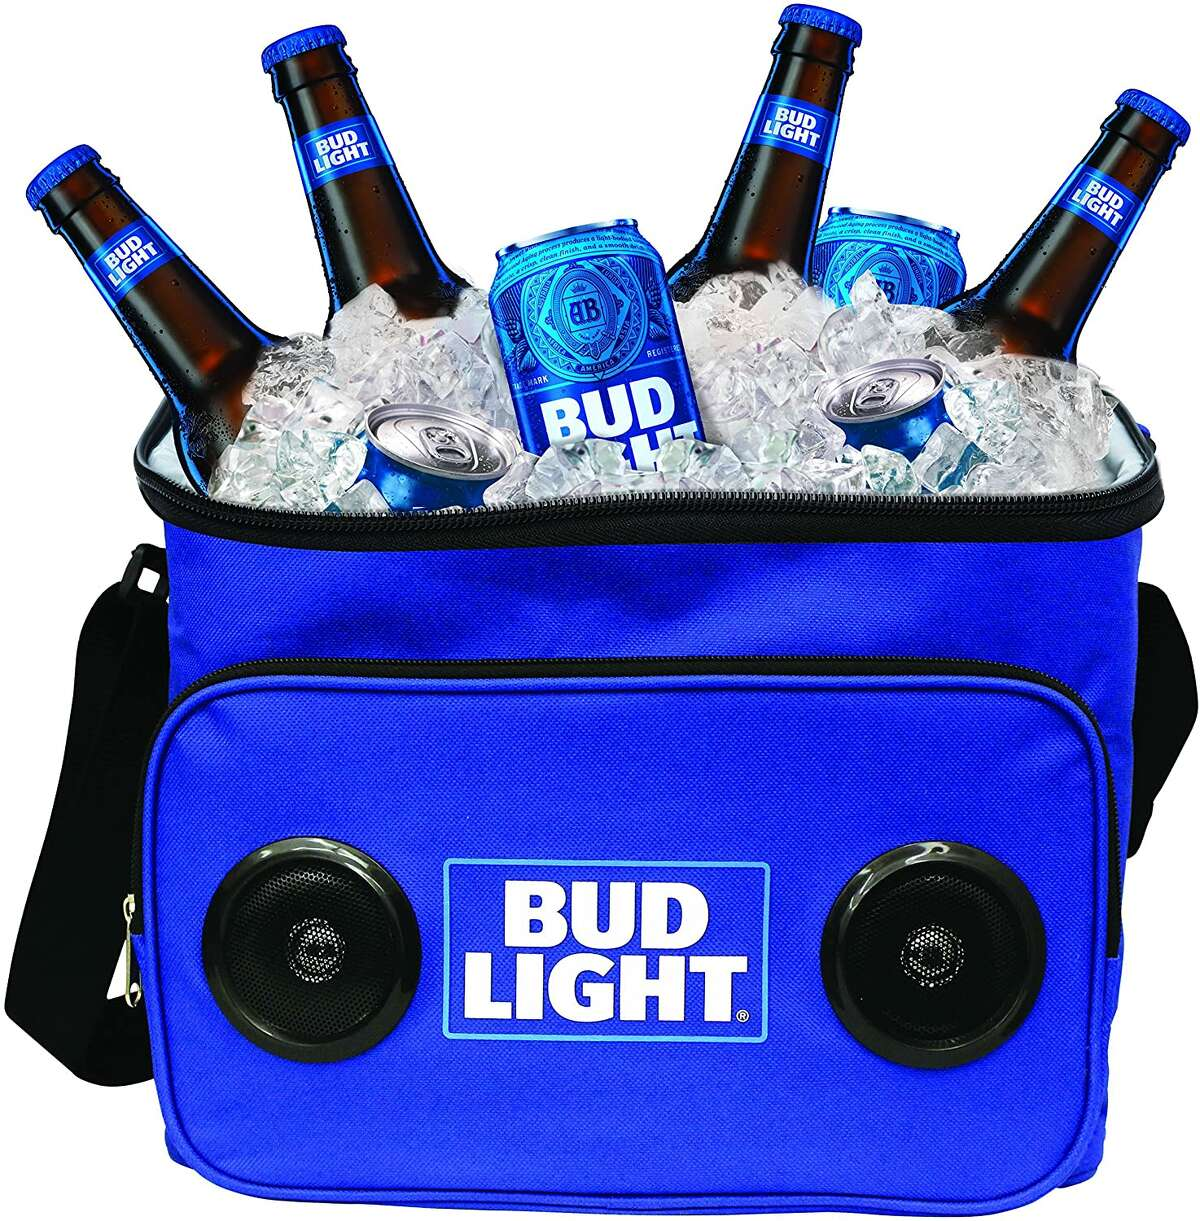 This Budlight Soft Cooler can hold up to 24 cans and comes equipped with a bluetooth speaker. An Amazon best-seller, you can get it for Dad for just $24.99.